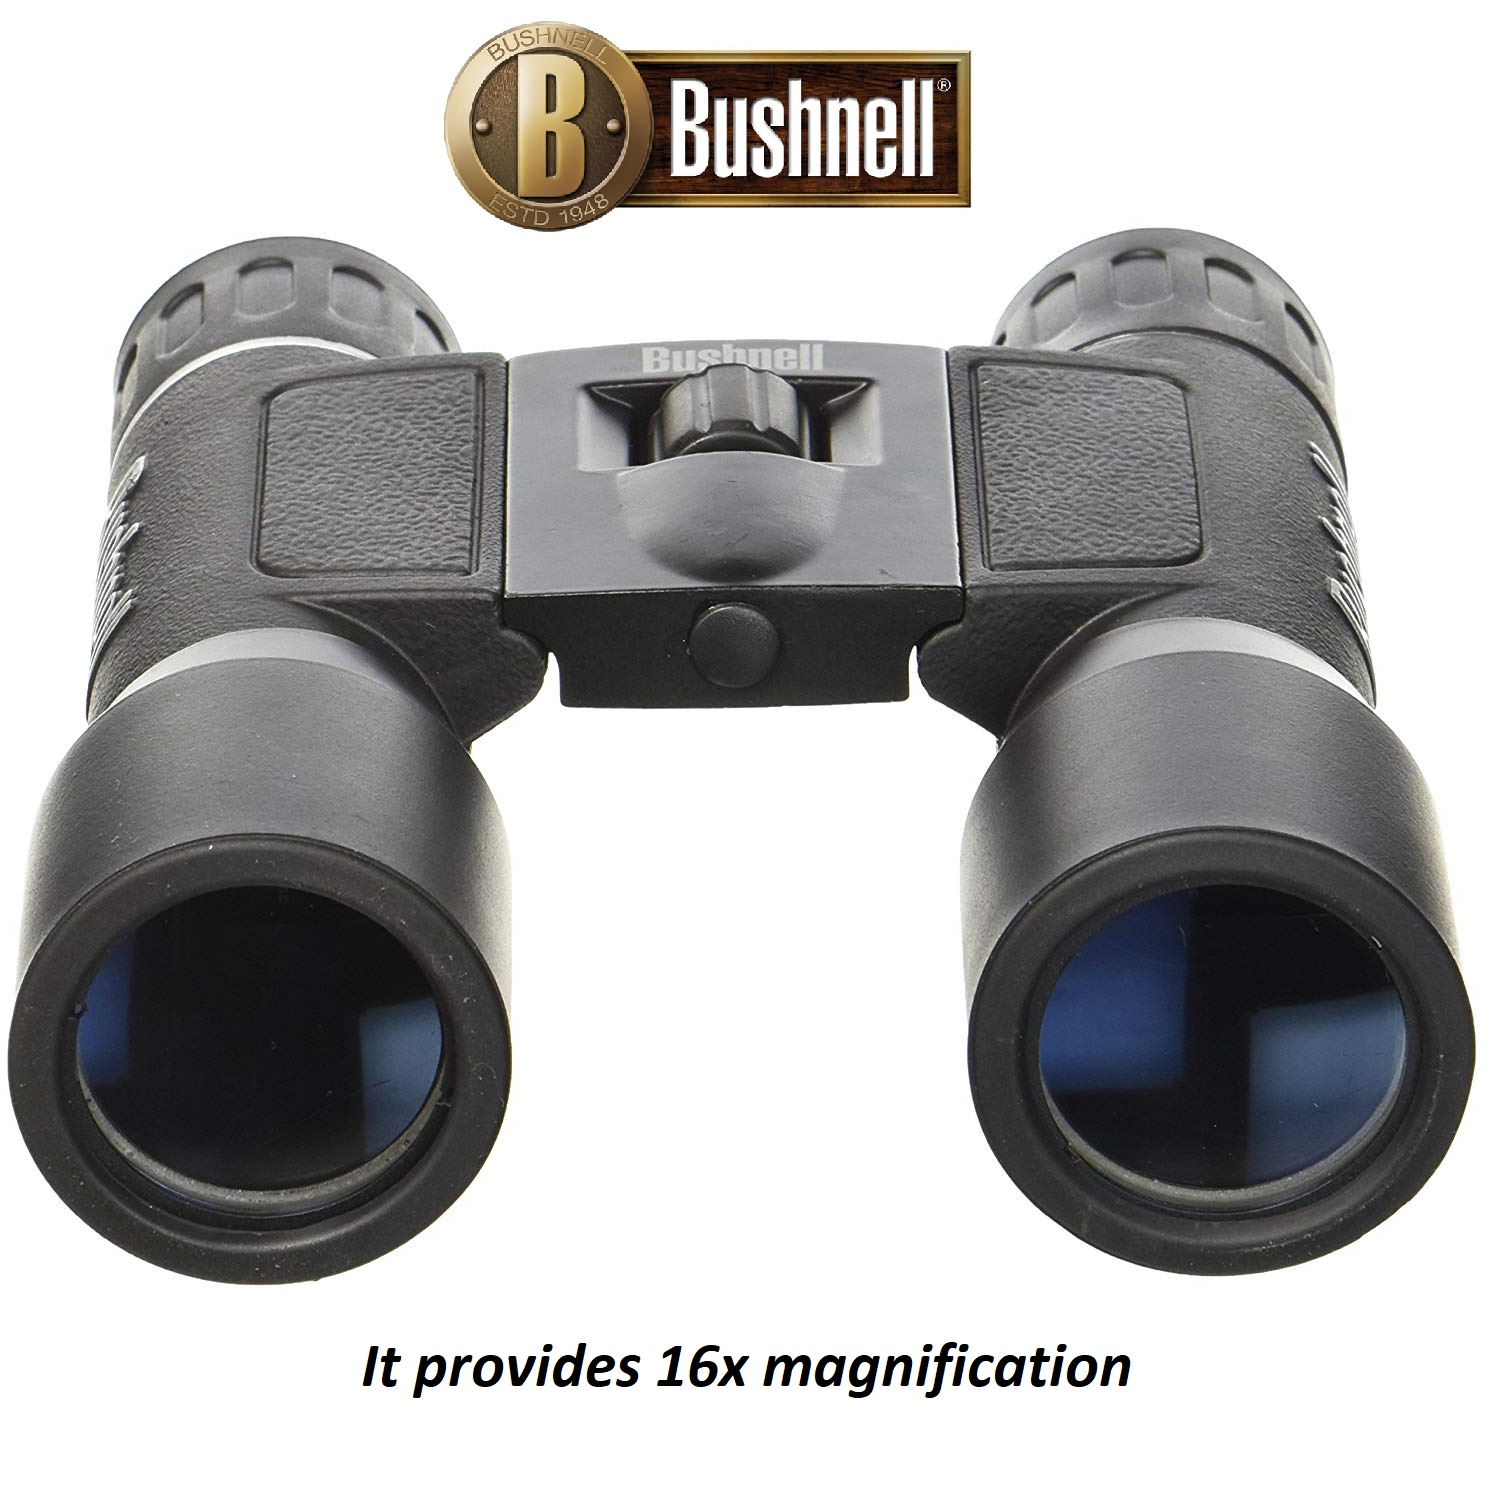 Bushnell 16x32 Powerview Folding Binoculars